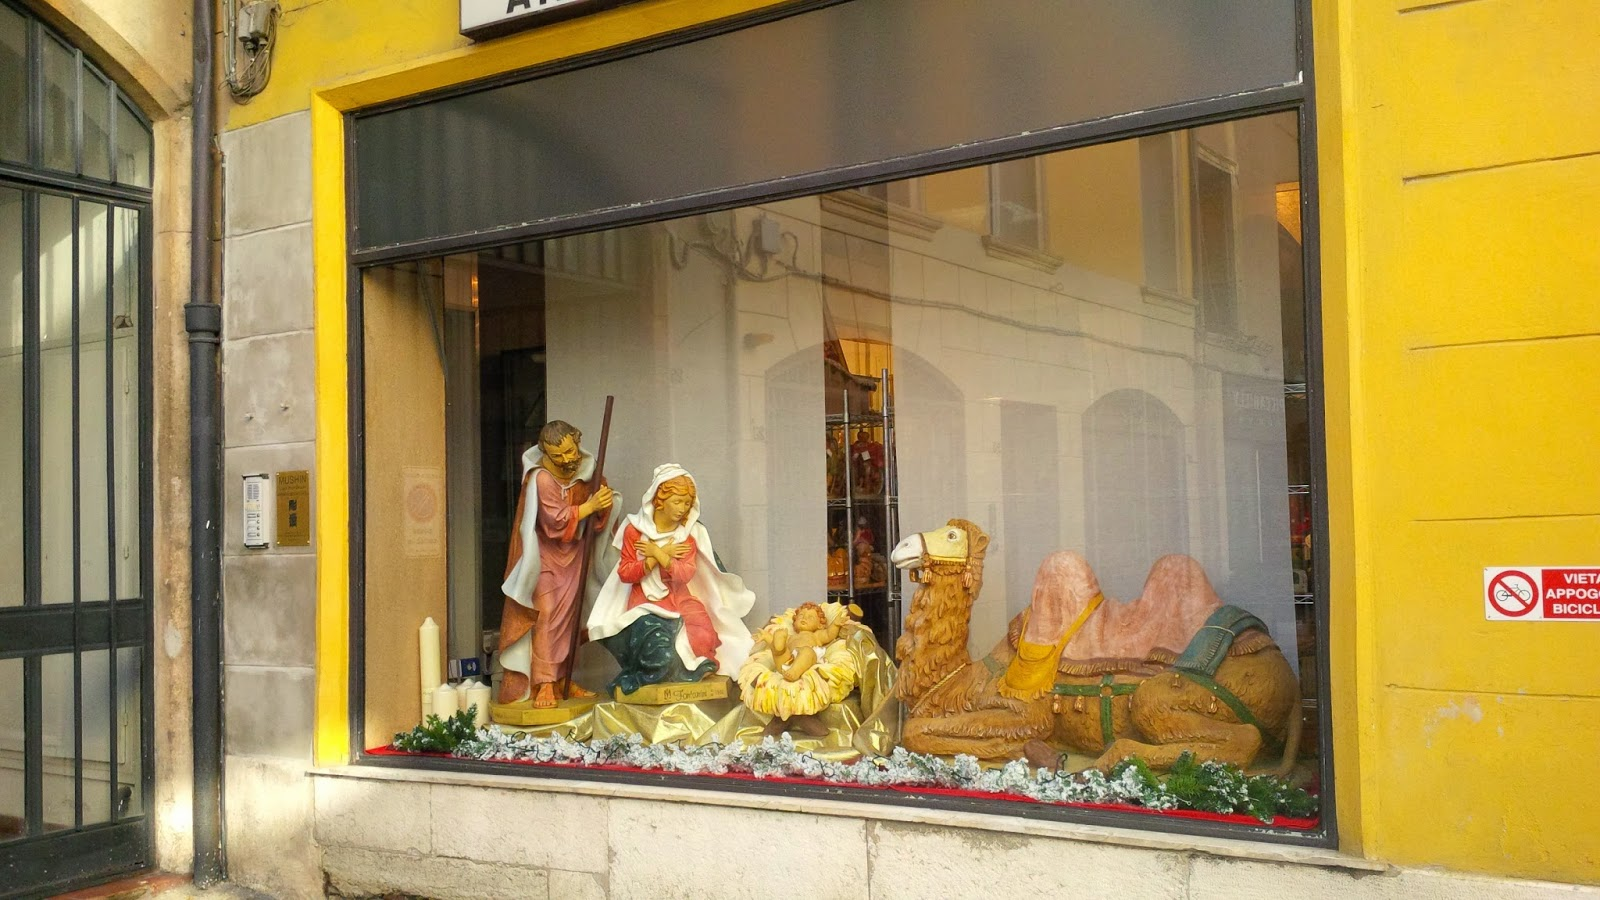 Biblical window display in a shop in Vicenza